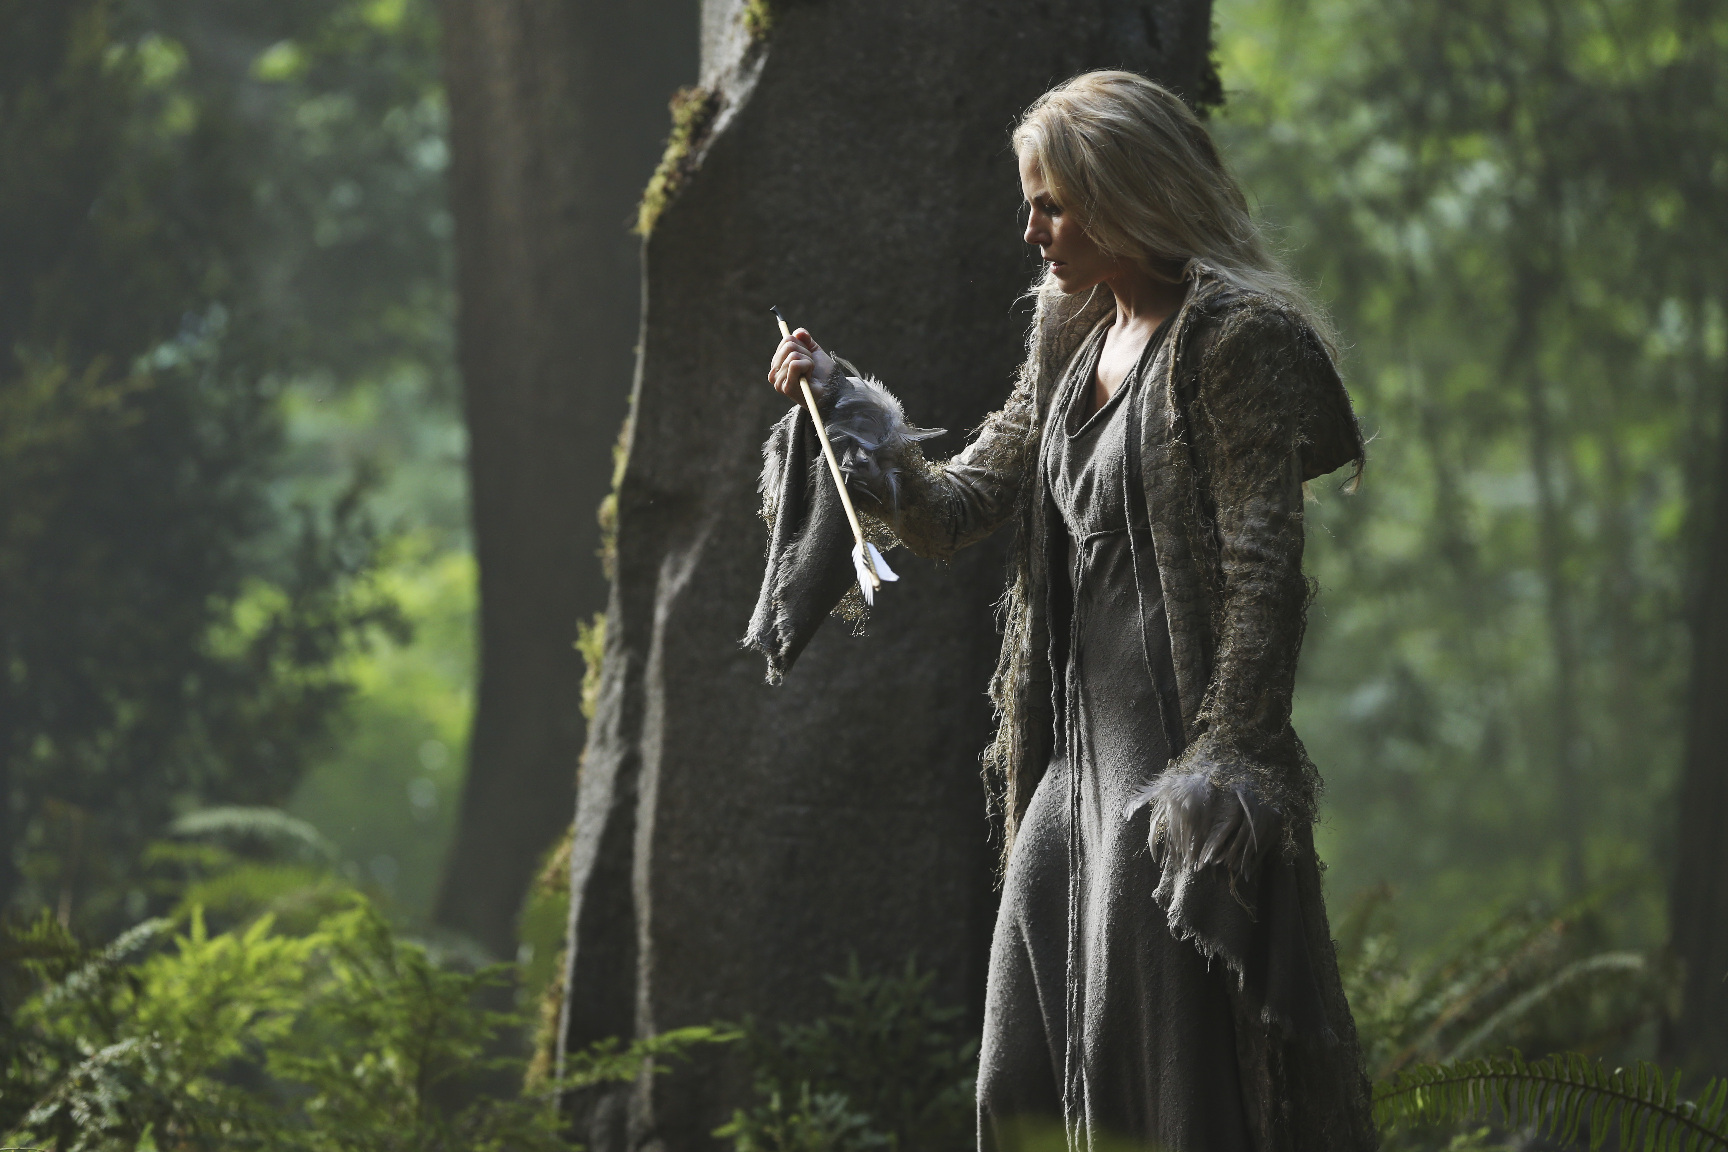 Emma Swan Turns Dark in Once Upon a Time Season 5